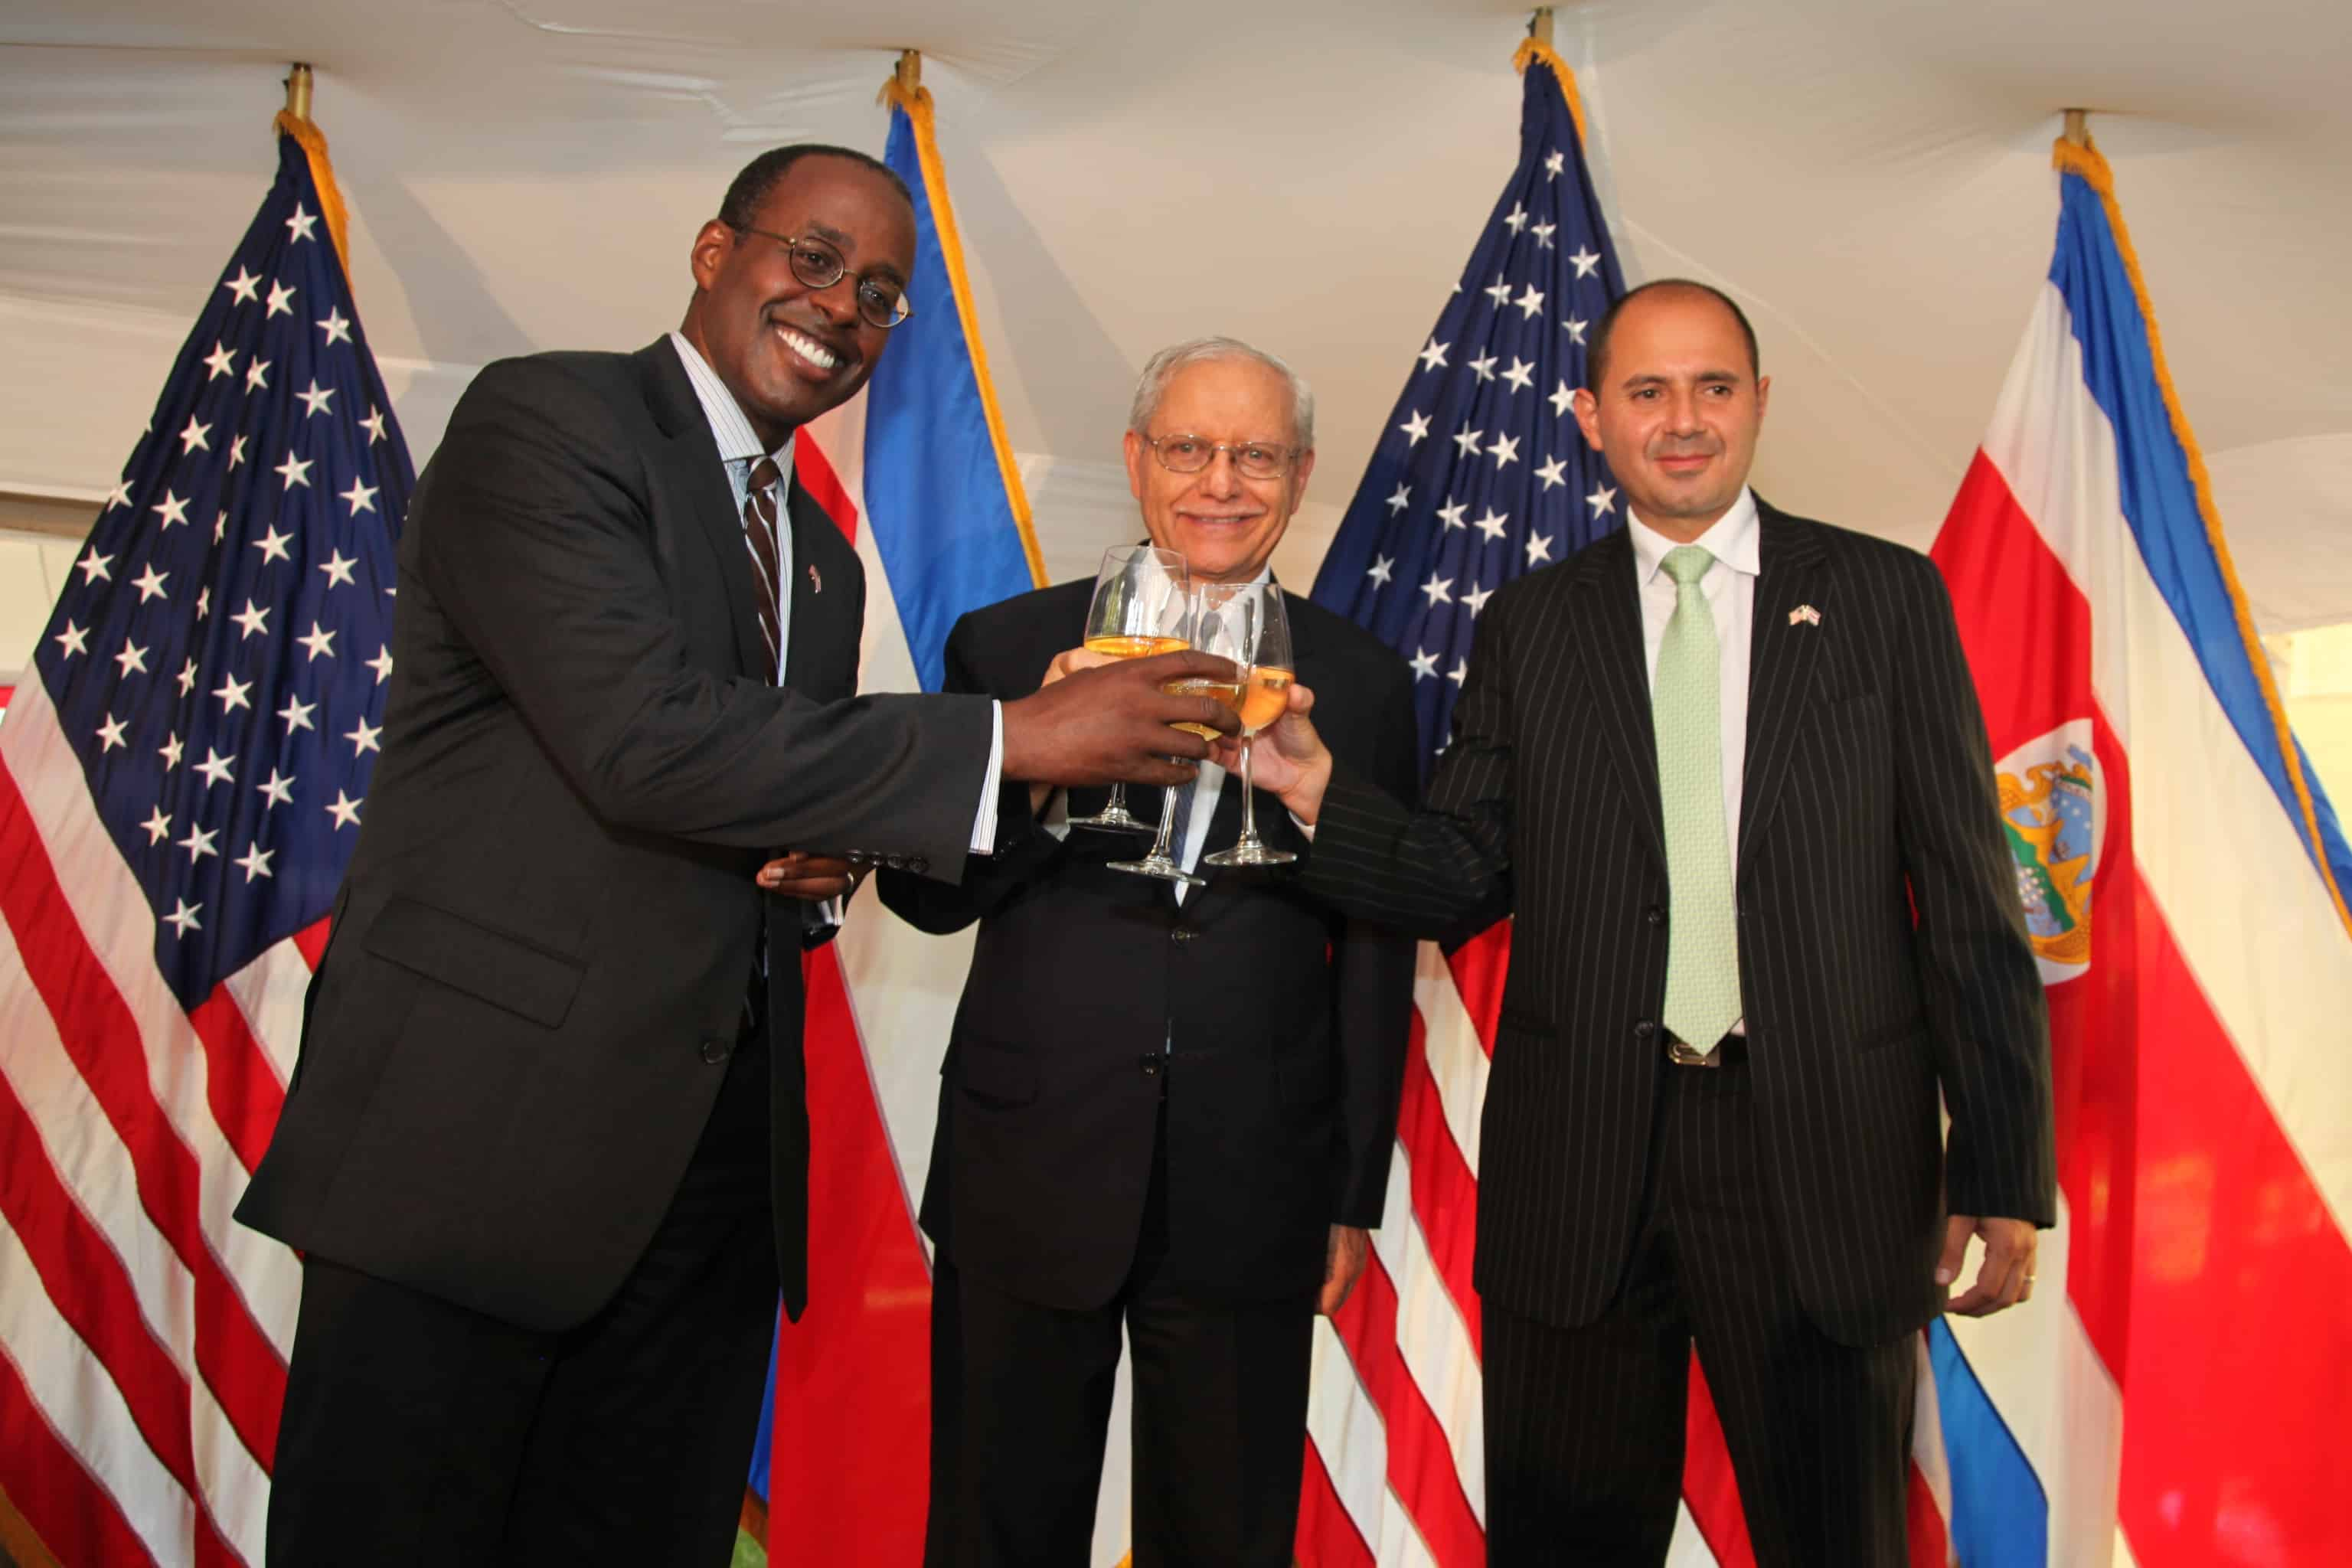 From left to right: U.S. Ambassador to Costa Rica S. Fitzgerald Haney, Costa Rican Vice President Helio Fallas, and Costa Rica's acting Foreign Minister Alejandro Solano on July 2, 2015.